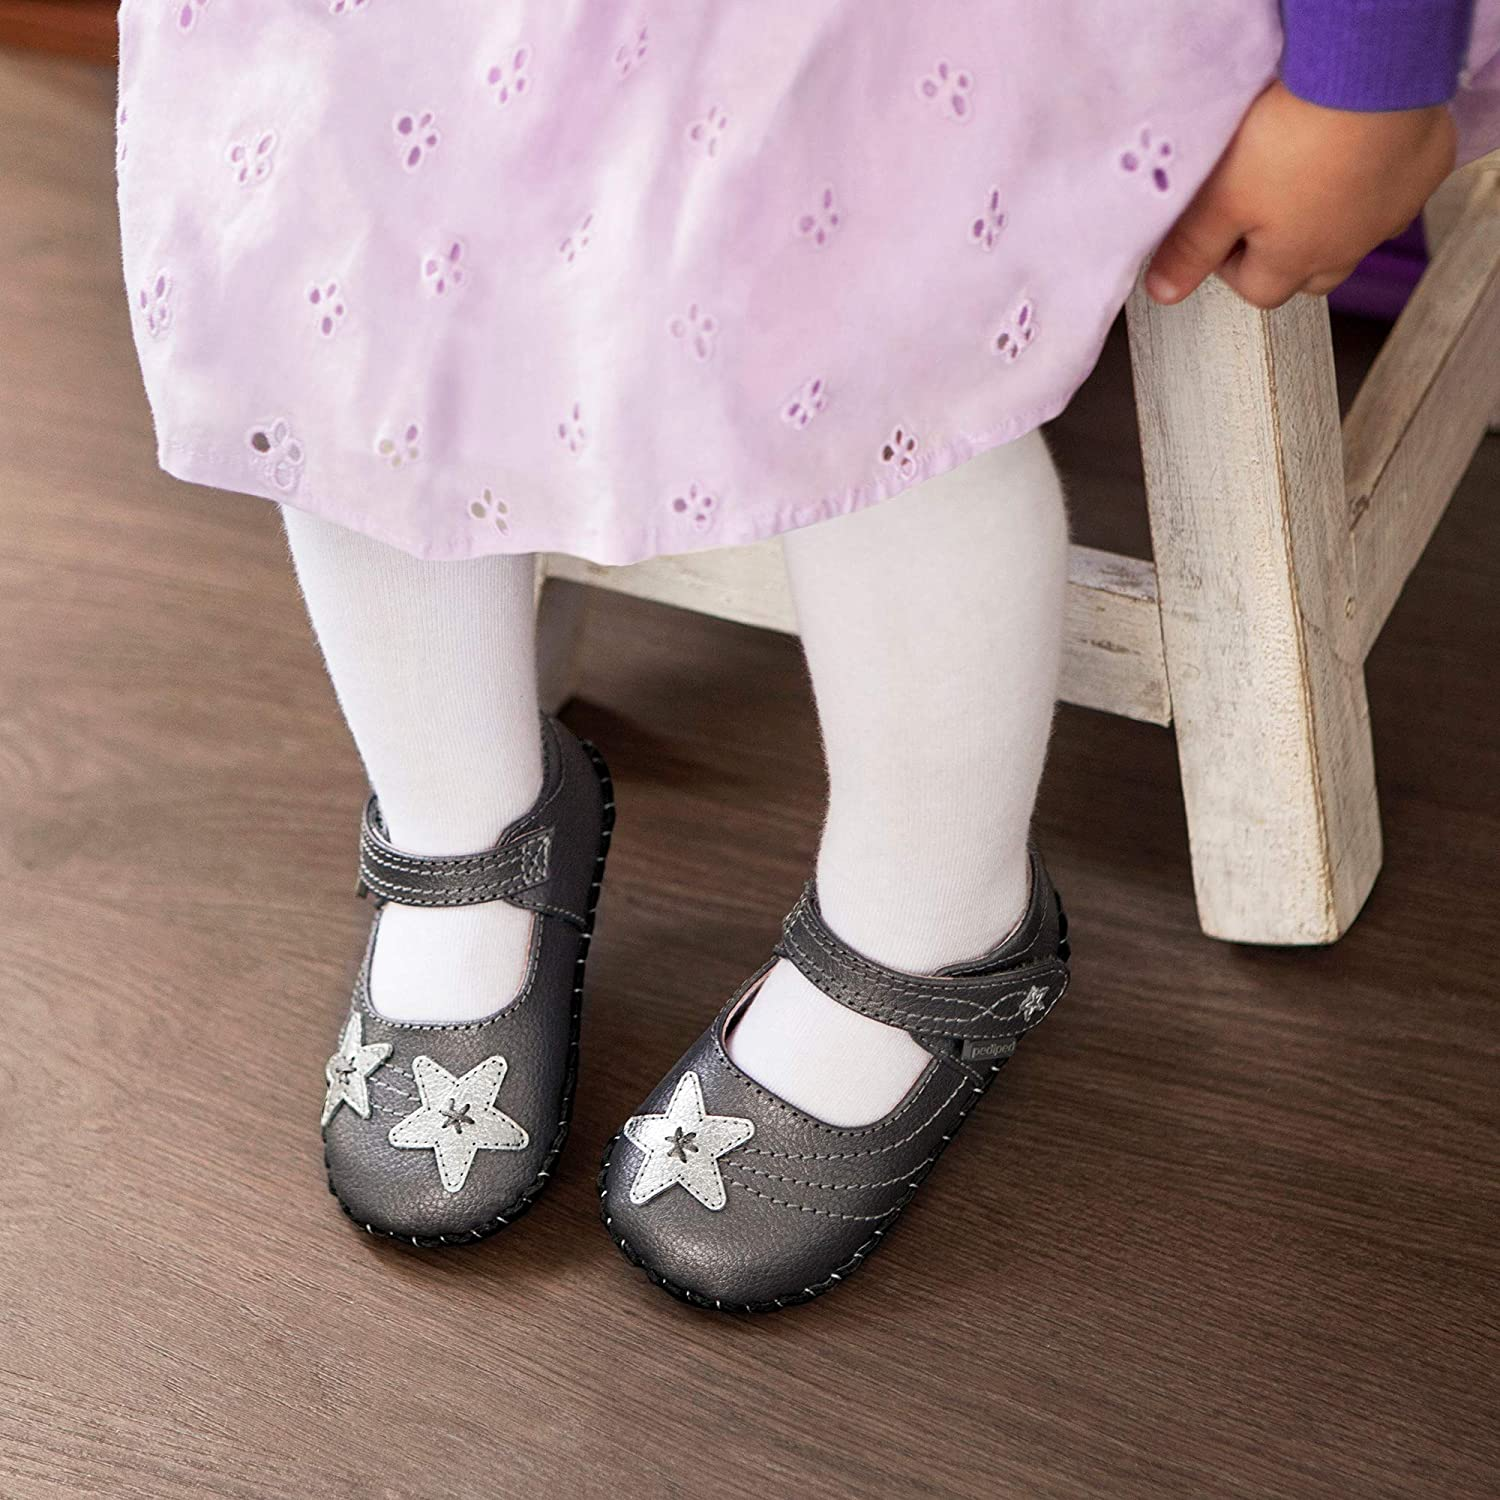 pediped Starlight Mary Jane